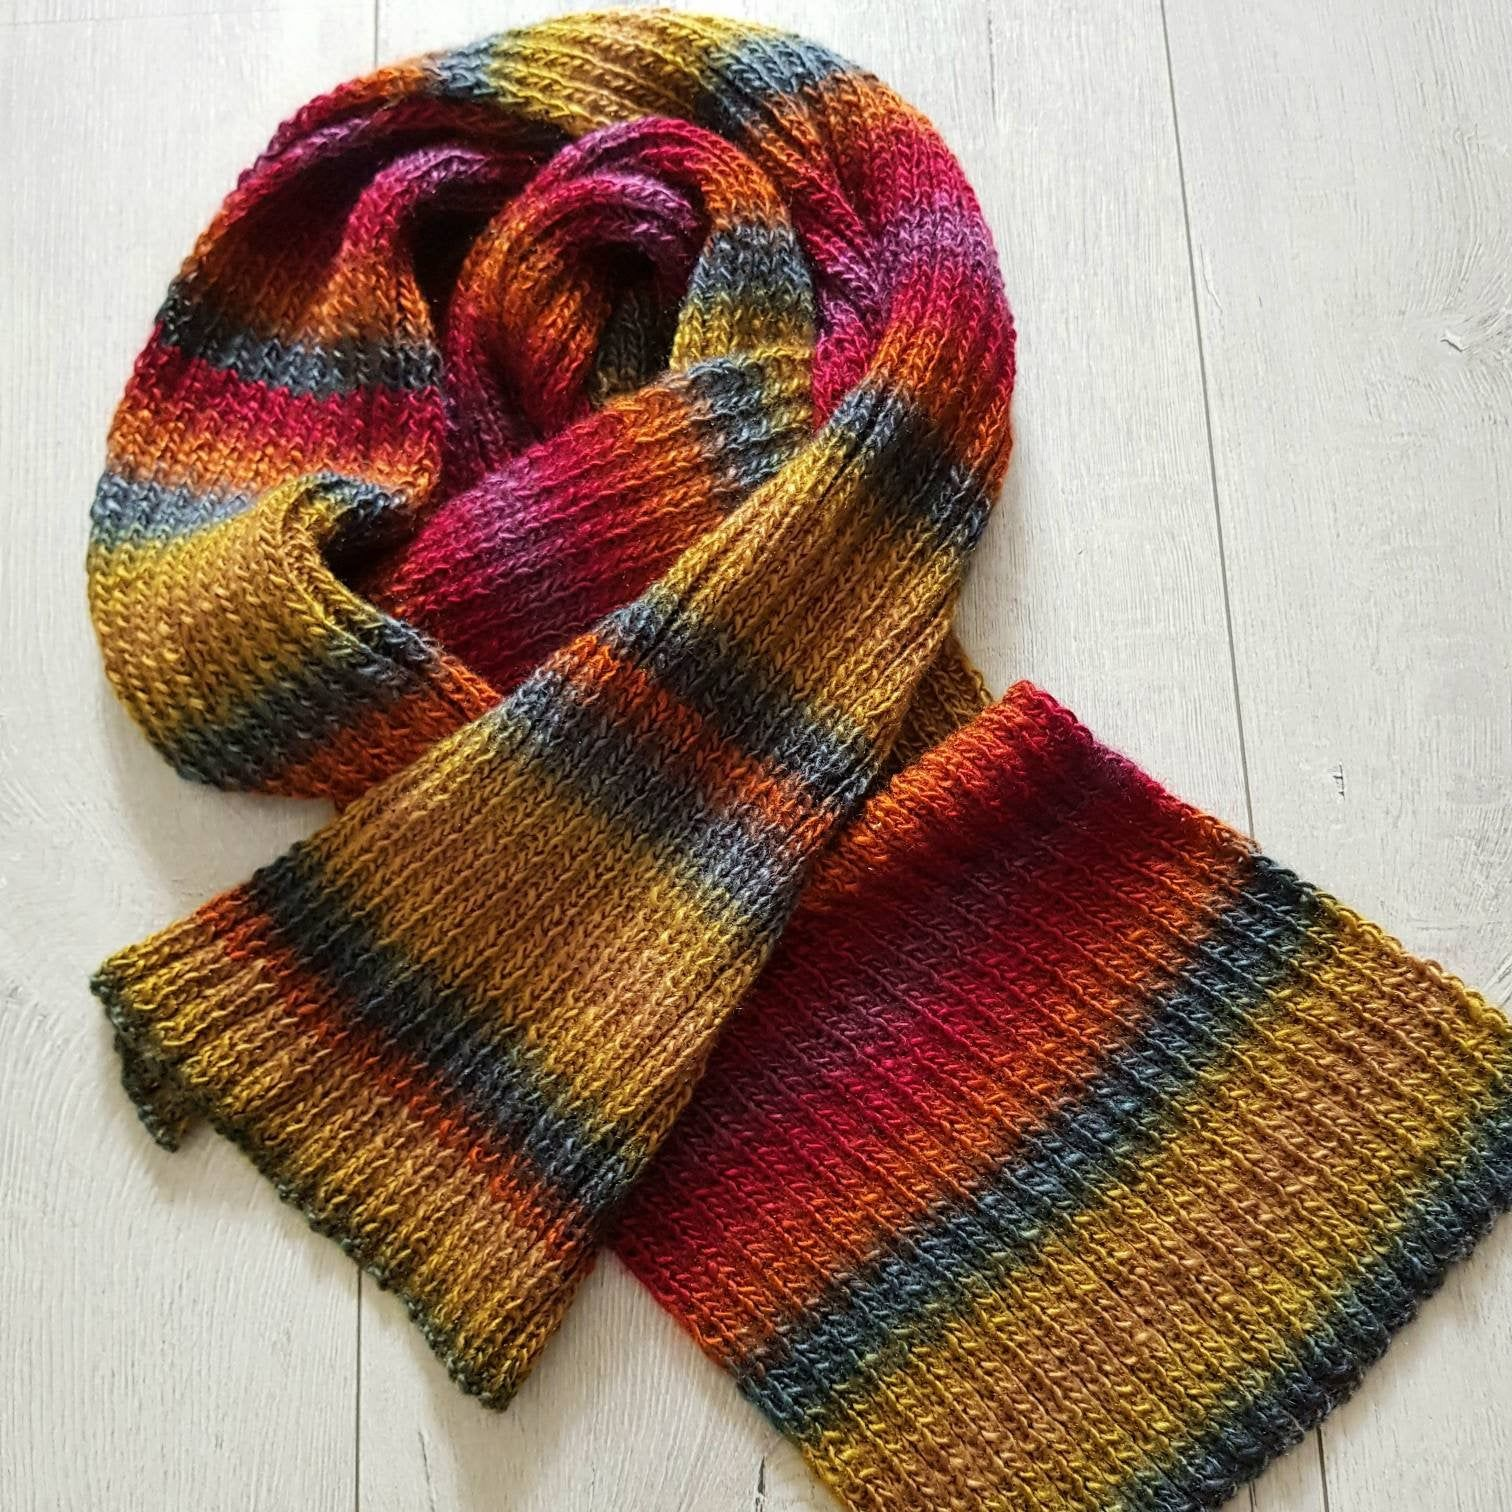 Photo of Men's scarf, colorful winter knit handmade, gift idea men